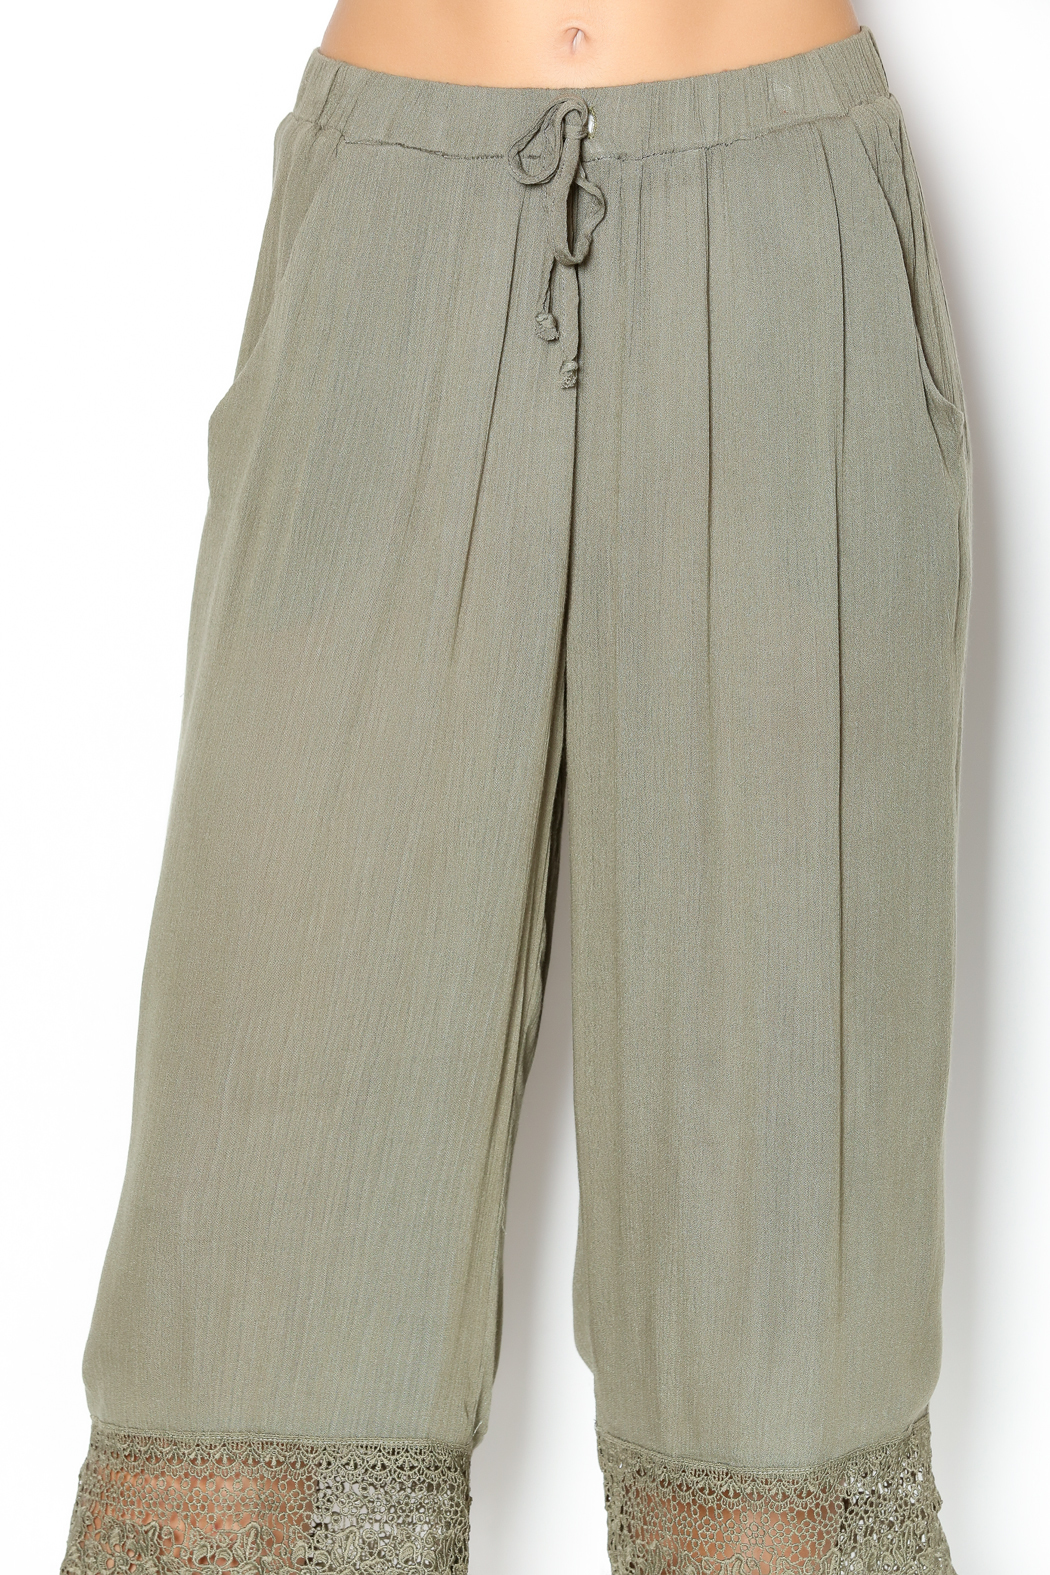 Umgee USA Olive Capri Pants from Kentucky by Lennon & Lace ...